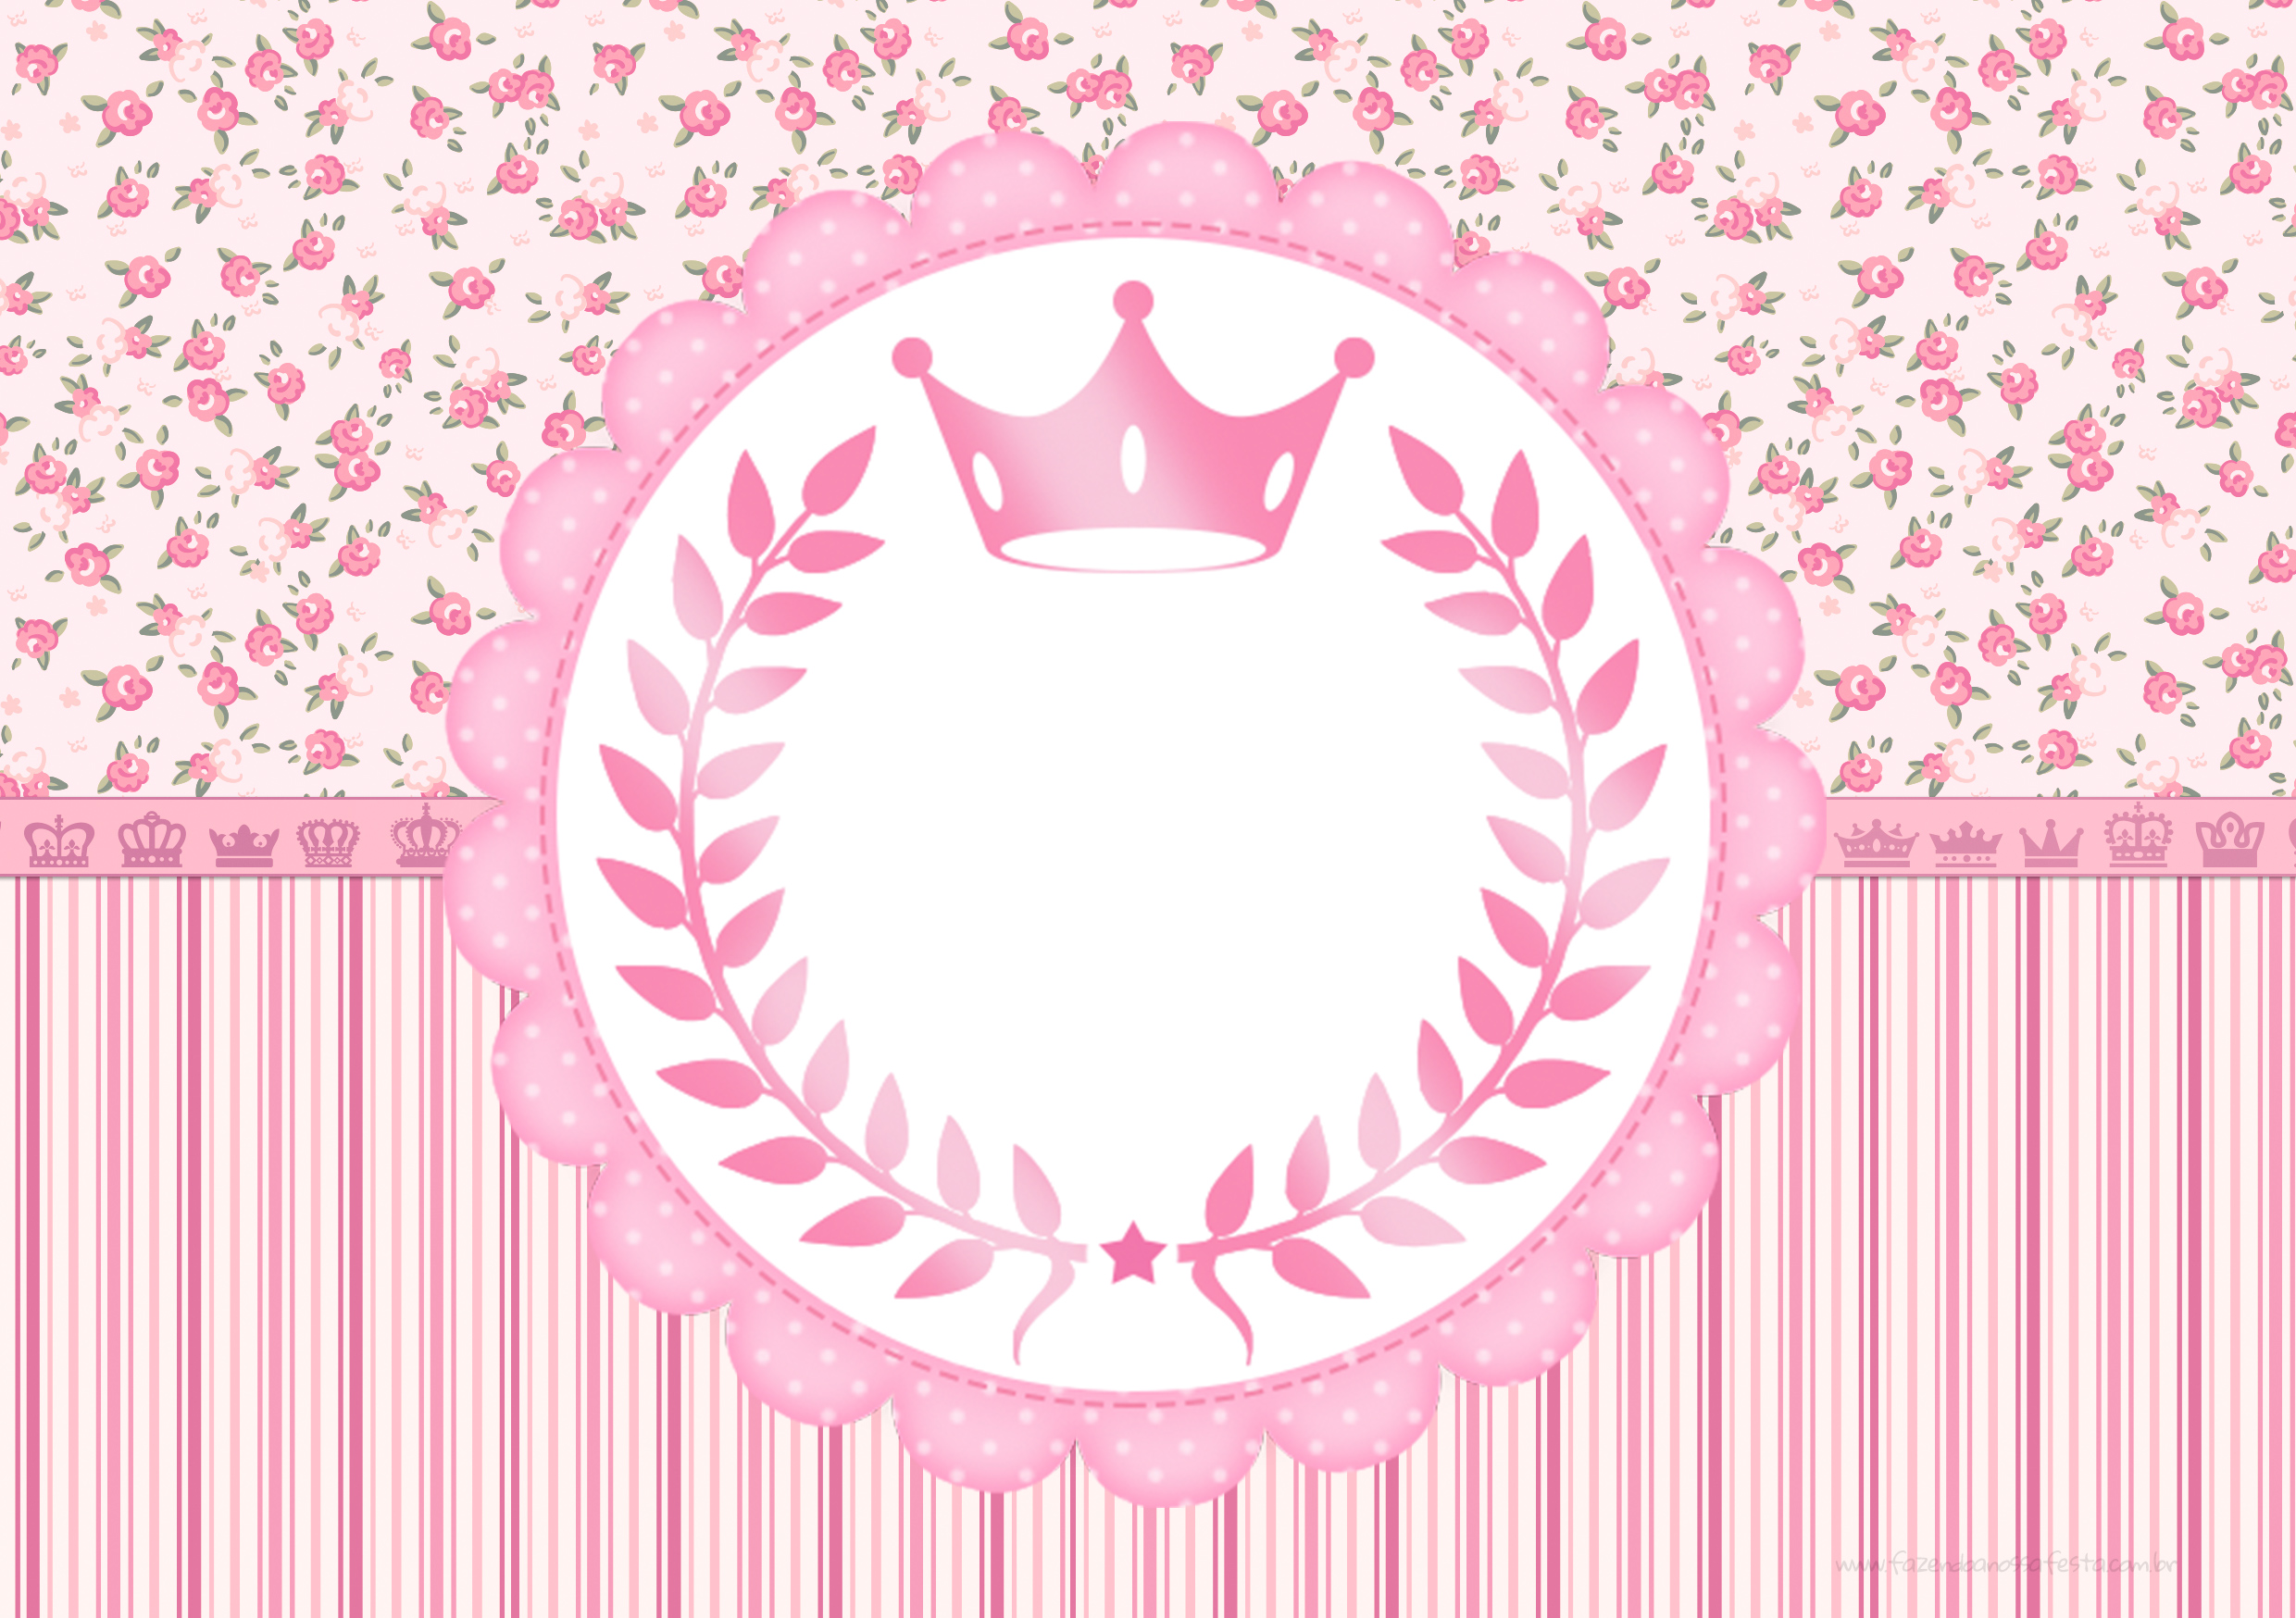 Princess Crown Baby Shower Invitations was amazing invitations example